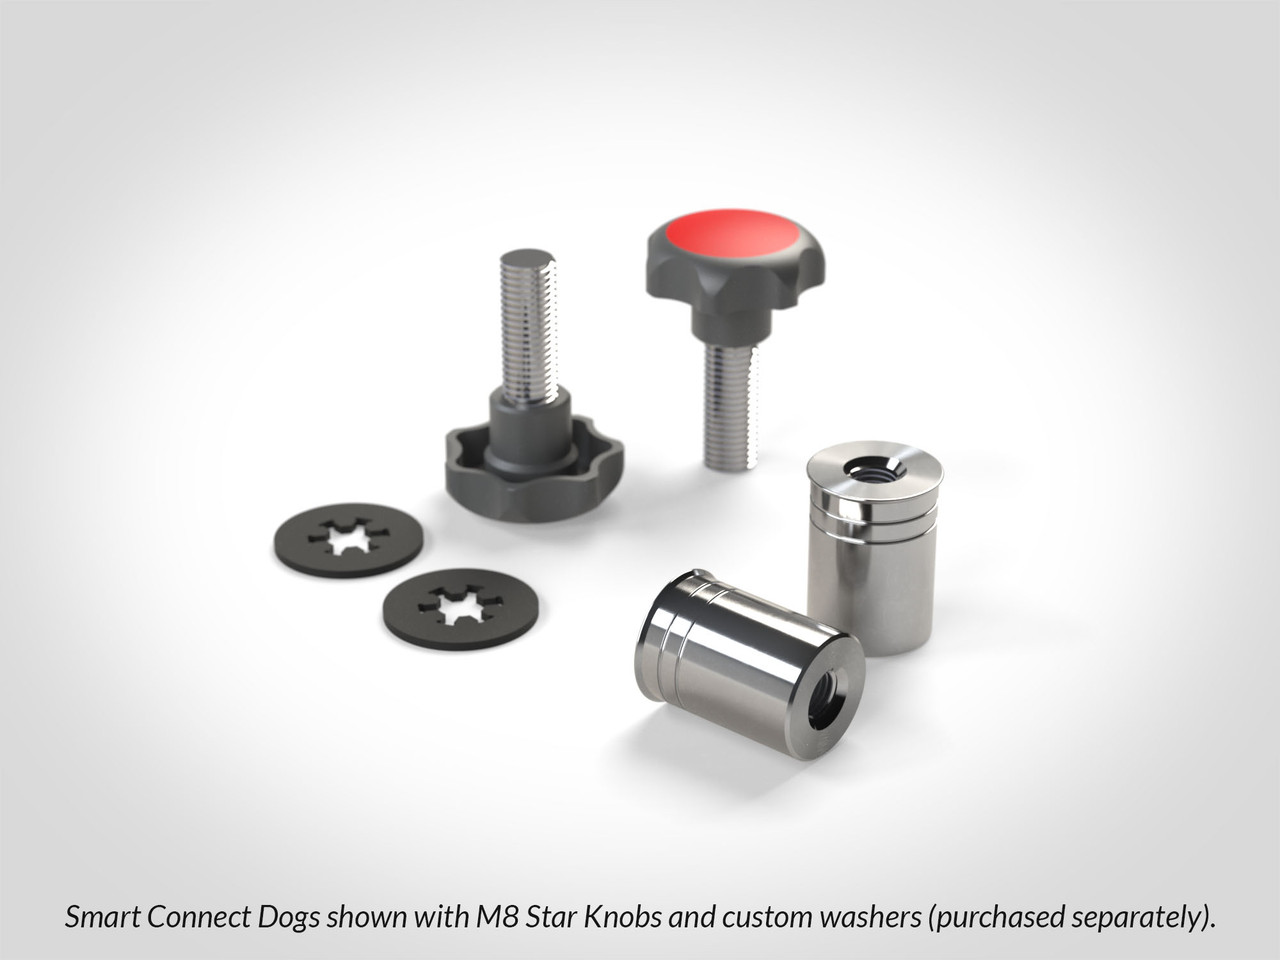 We recommend using Smart Connect Dogs with M8x1.25 clamping knobs such as our M8 SpeedKnobs or M8 Star Grip Knobs shown in this picture.